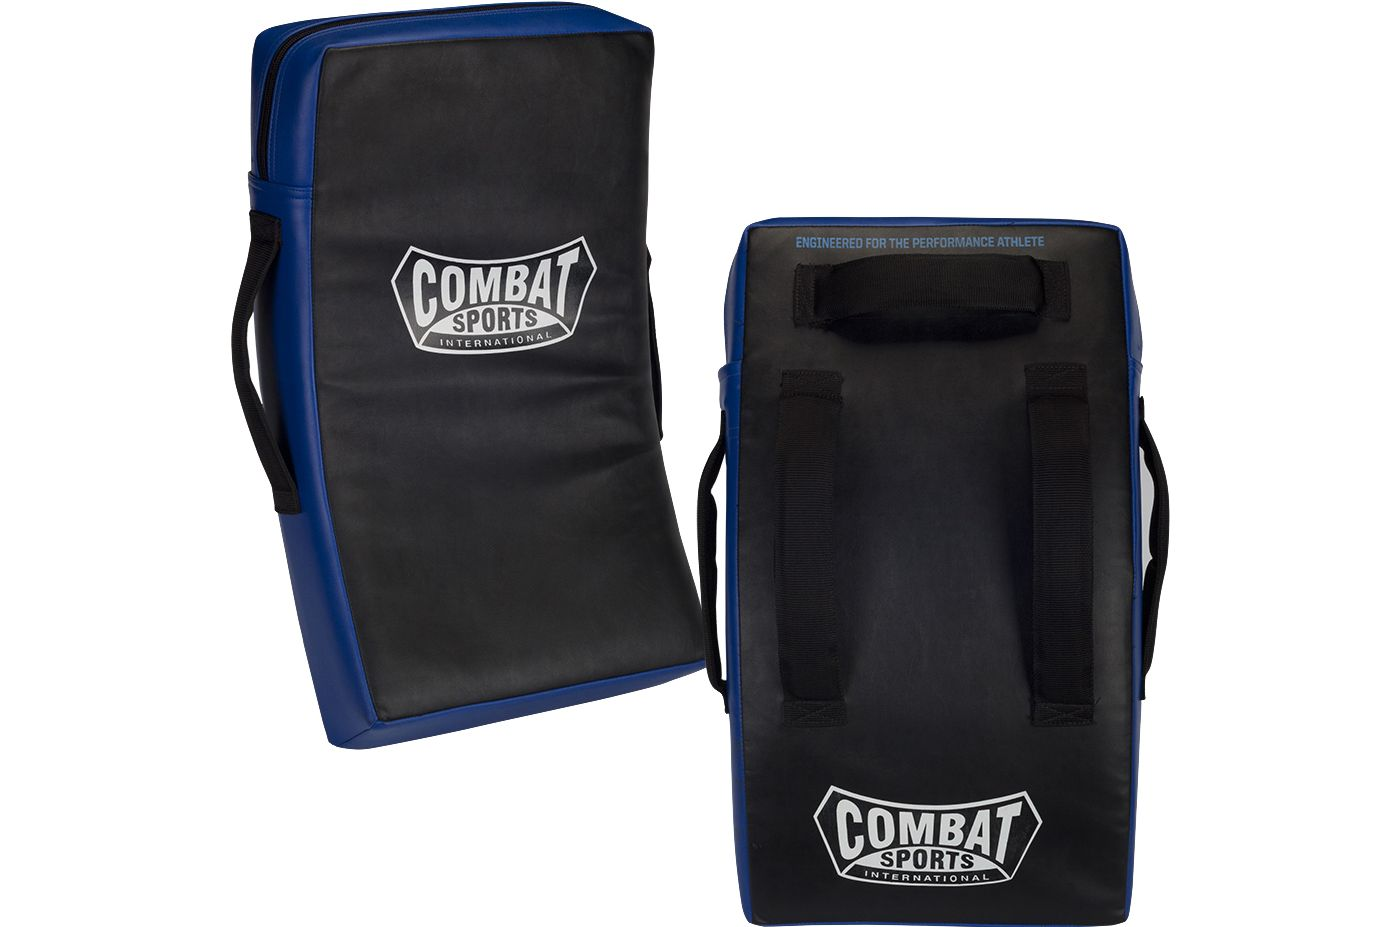 Combat Sports Curved Body Shield